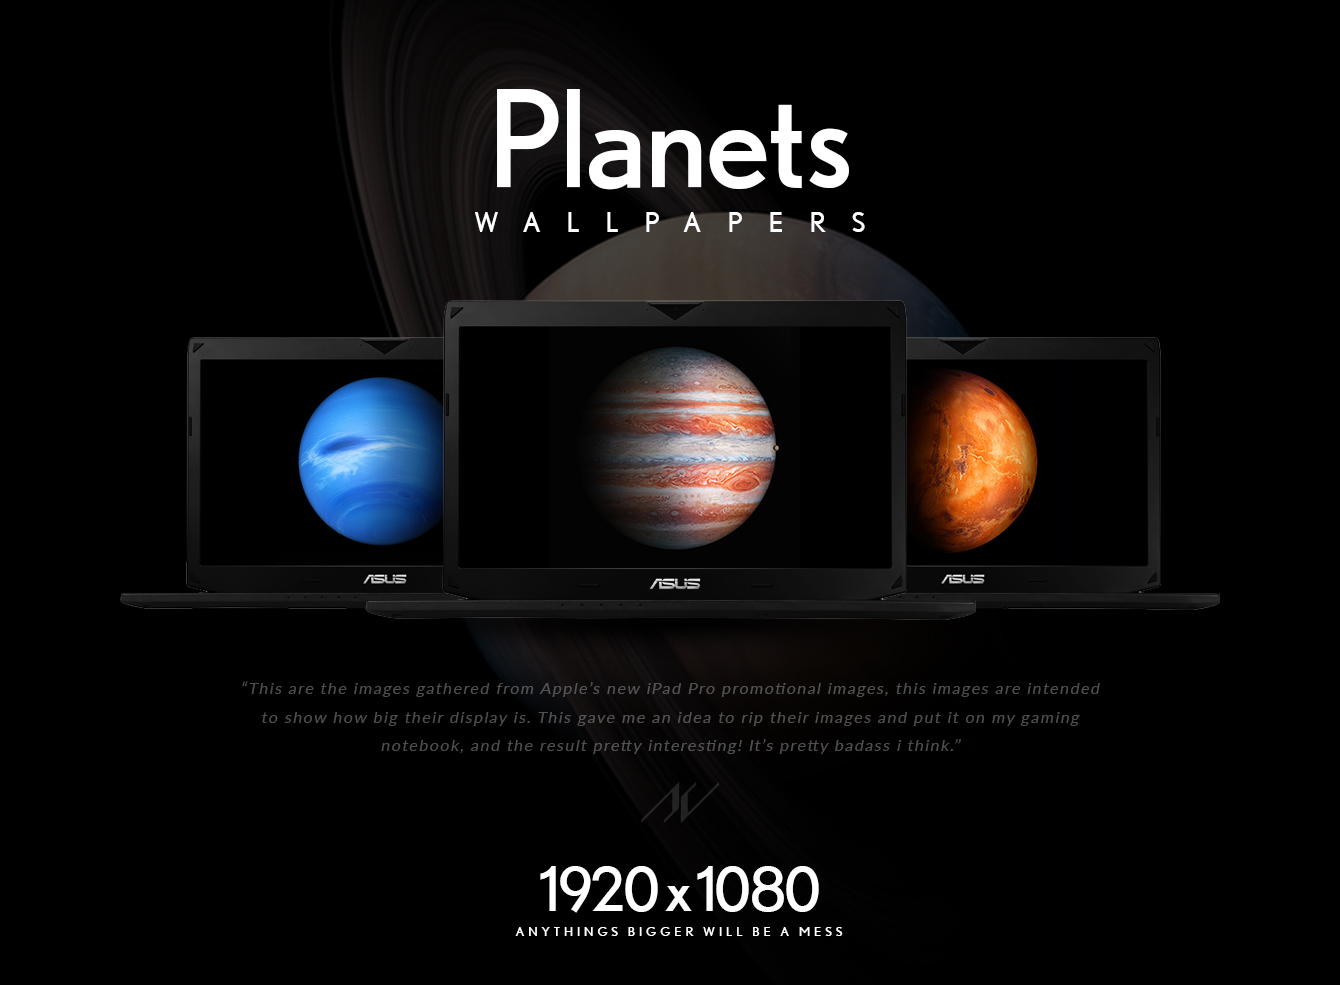 Planet Wallpapers - iPad Pro's Images [iOS9]